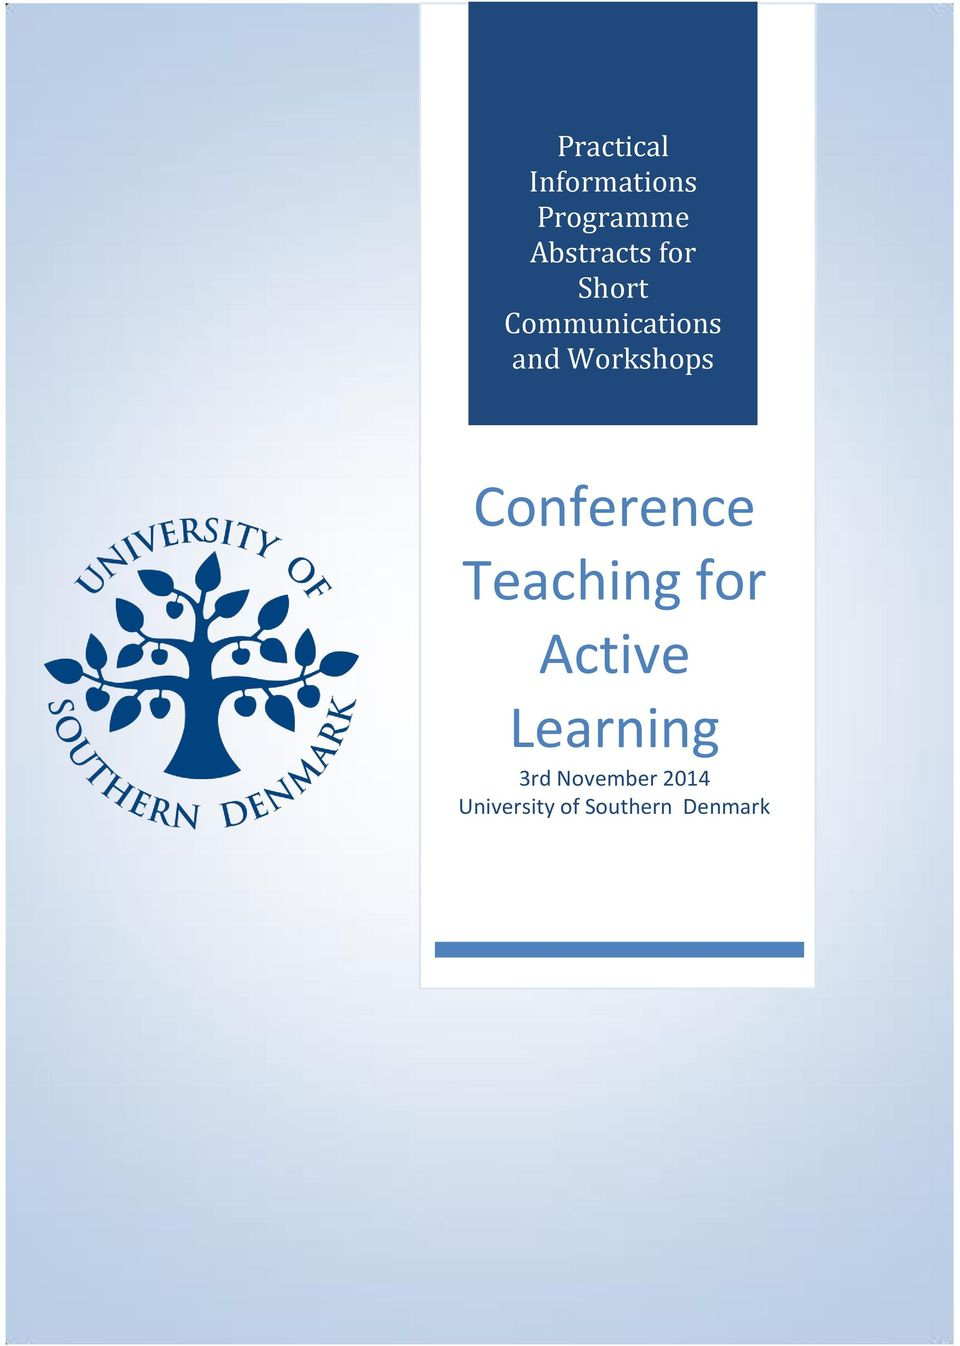 Conference Teaching for Active Learning